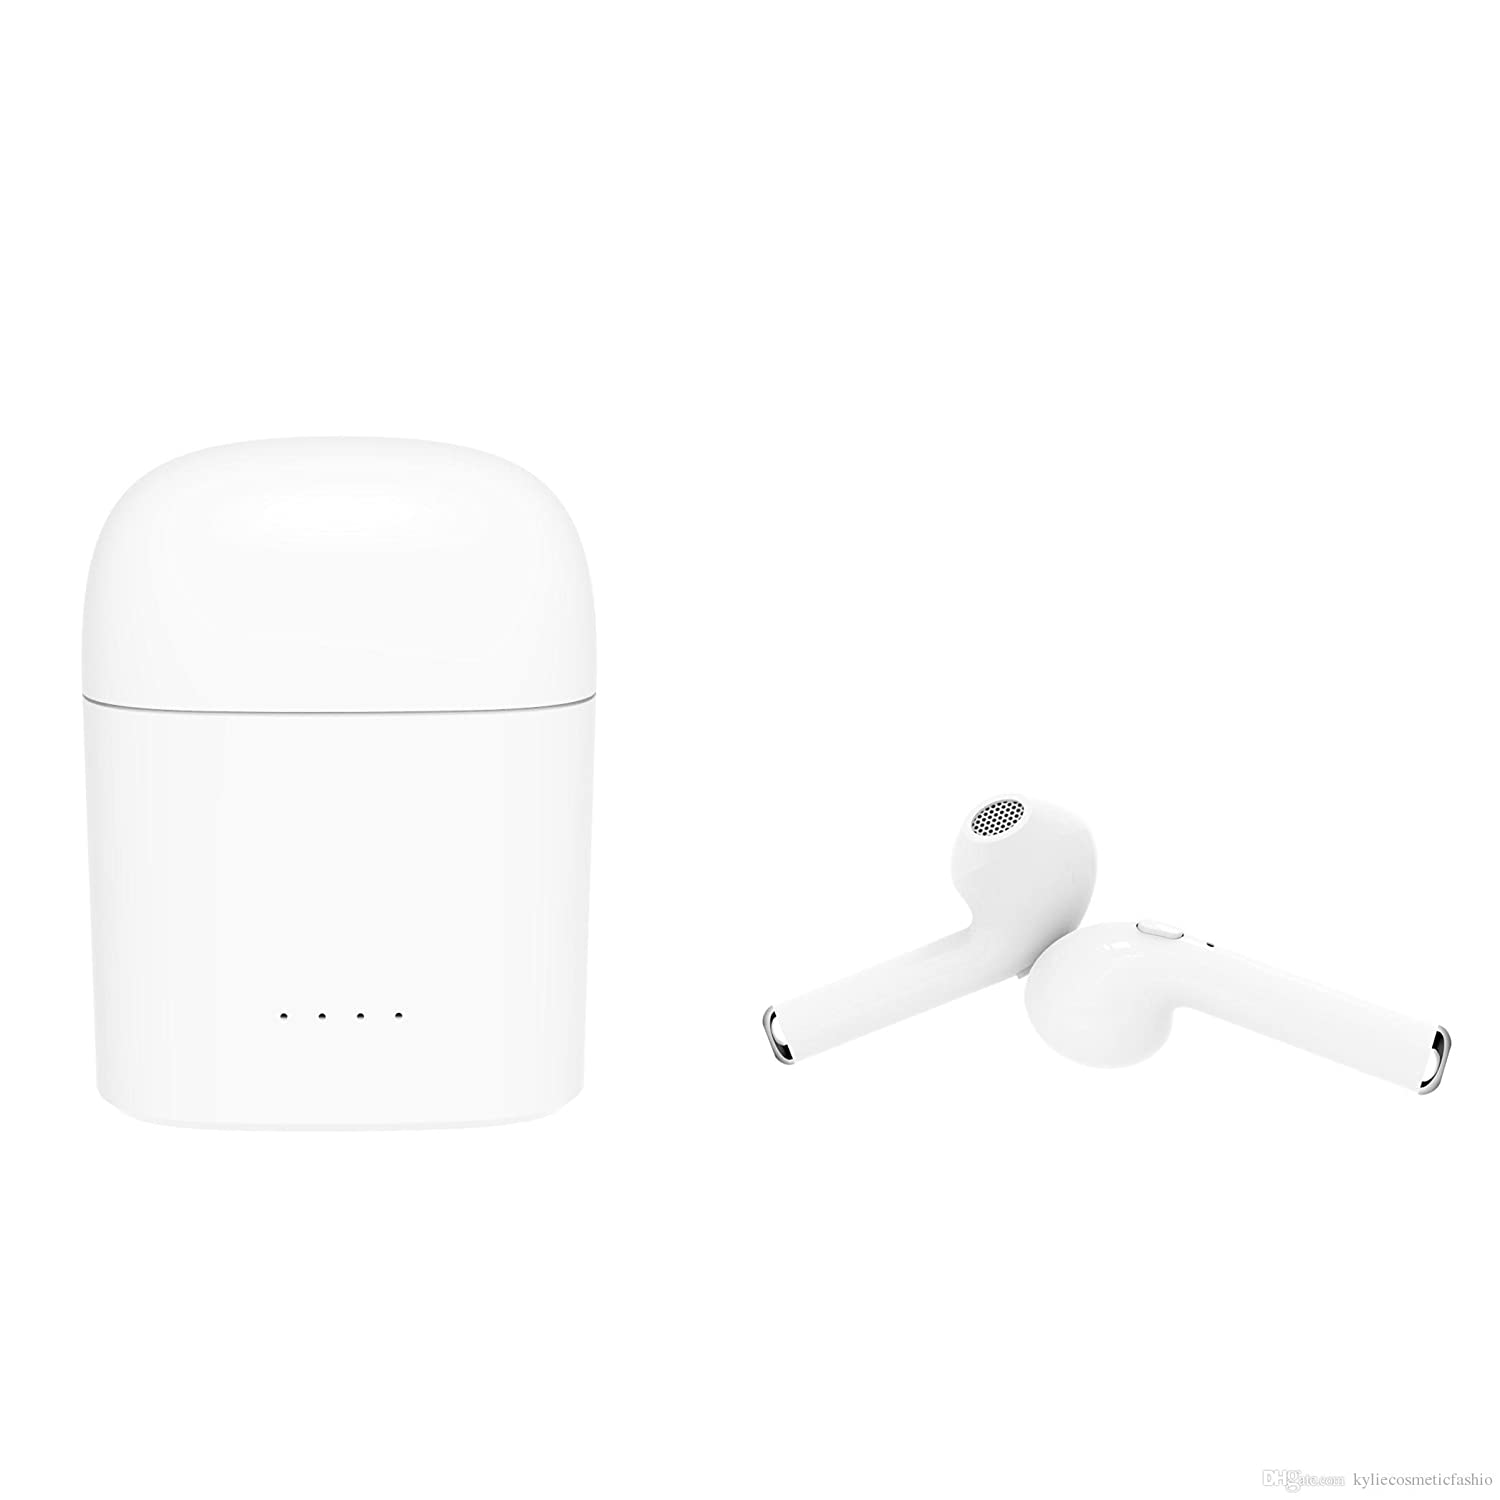 Auriculares Inalámbricos In-Ear, Estuche de Carga, Bluetooth V4.2, Manos Libres con Micrófono, Compatible con iPhone y Android, Color Blanco: Amazon.es: ...